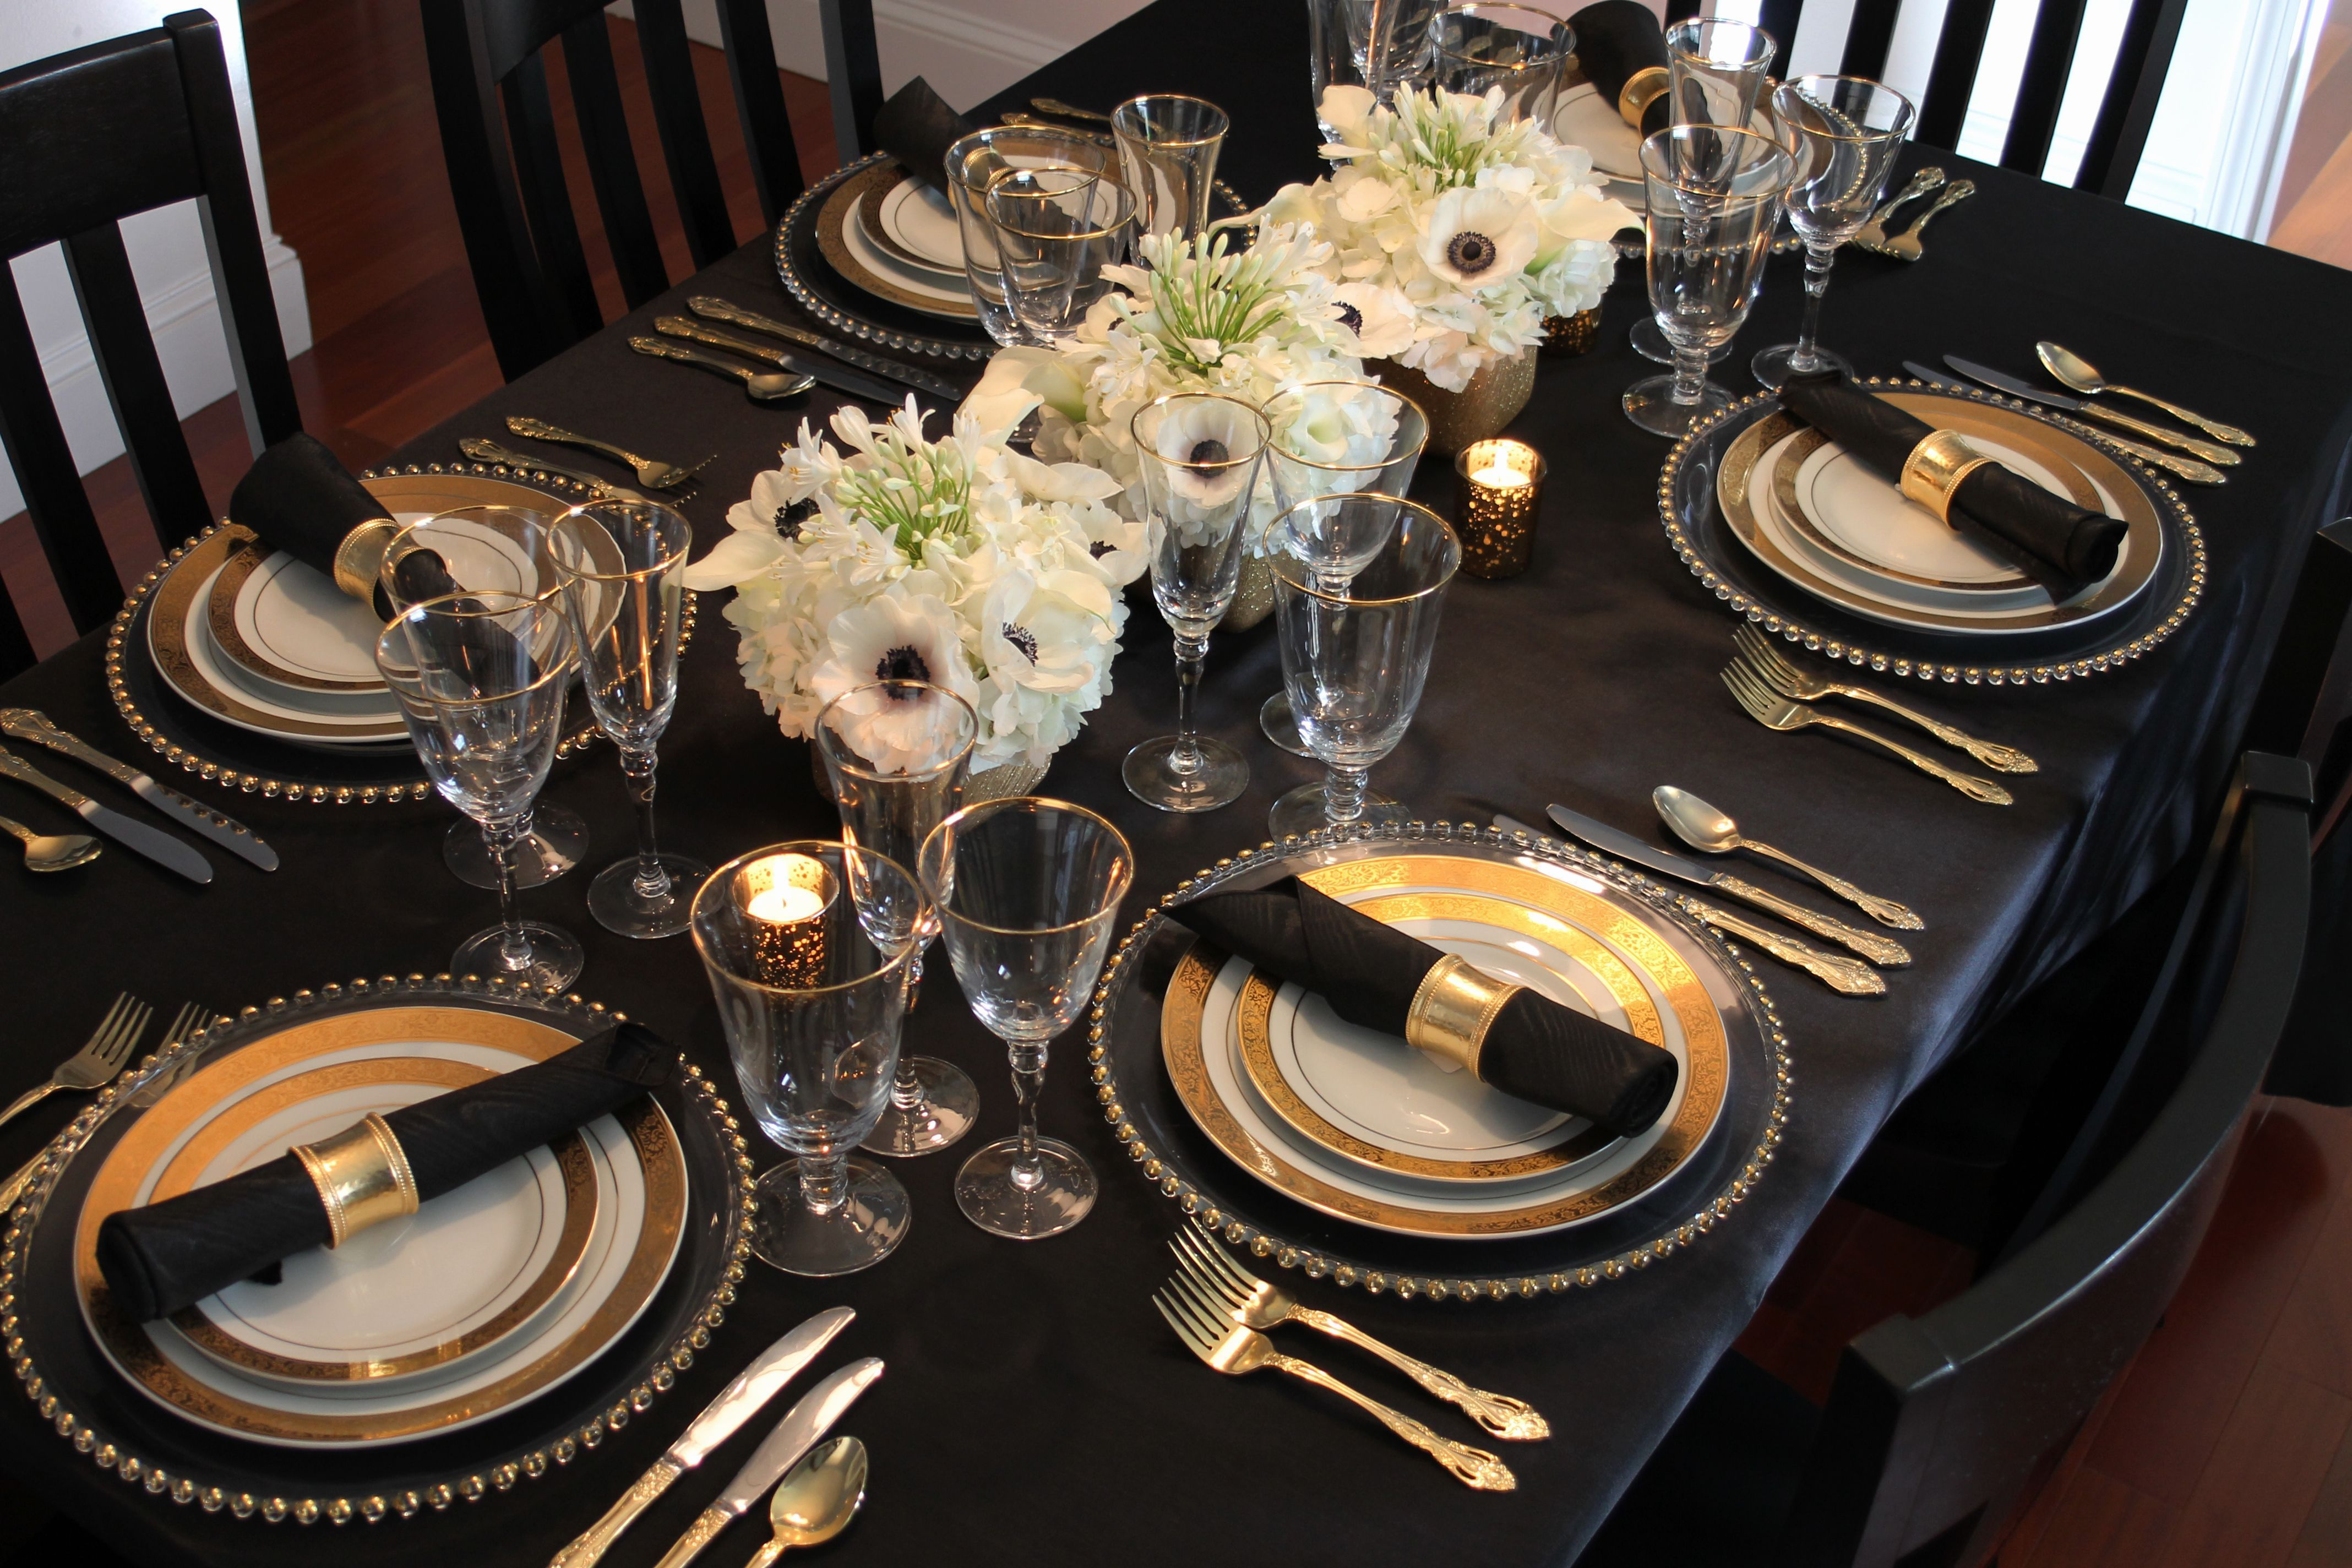 Pin On Table Settings For Parties